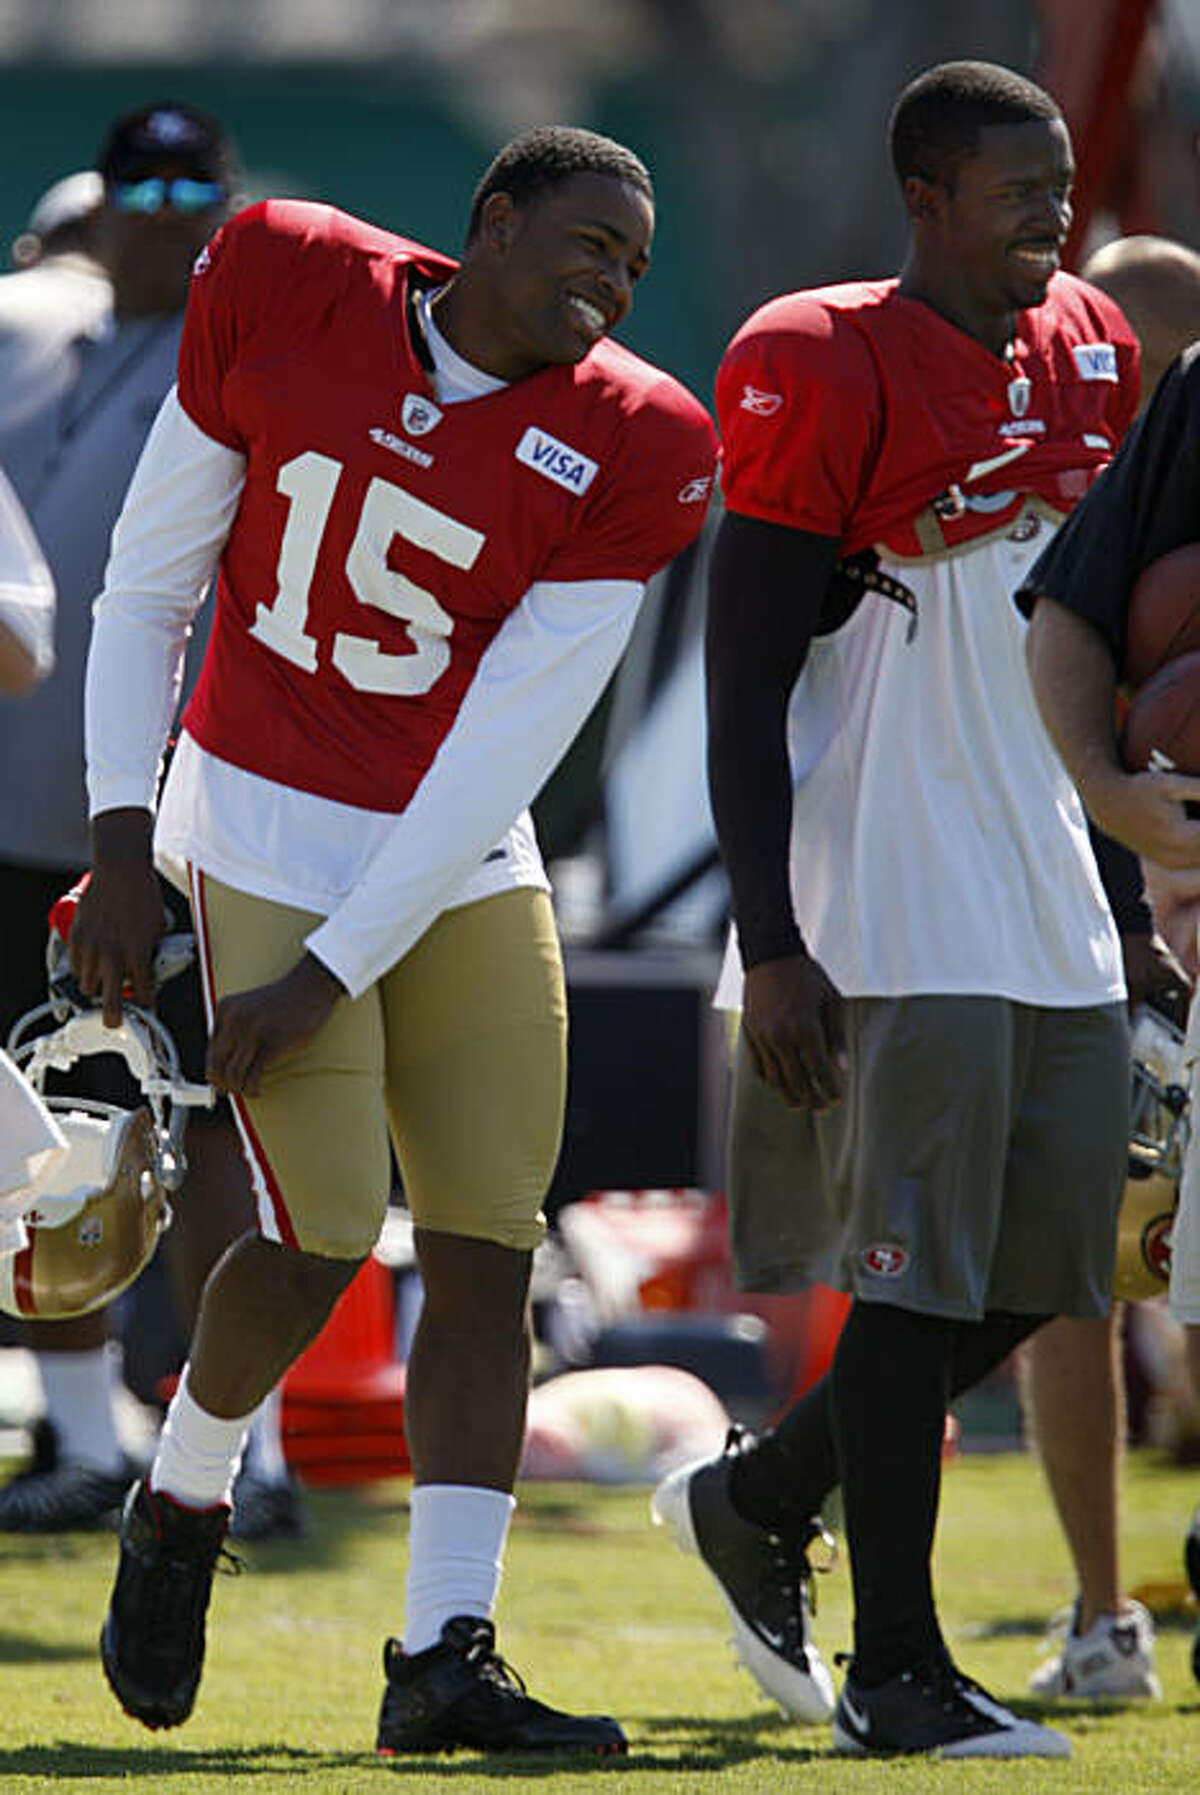 Newly-signed San Francisco 49ers wide receiver Michael Crabtree (15) laughs with teammate Josh Morgan at Crabtree's first practice at the team's headquarters in Santa Clara.